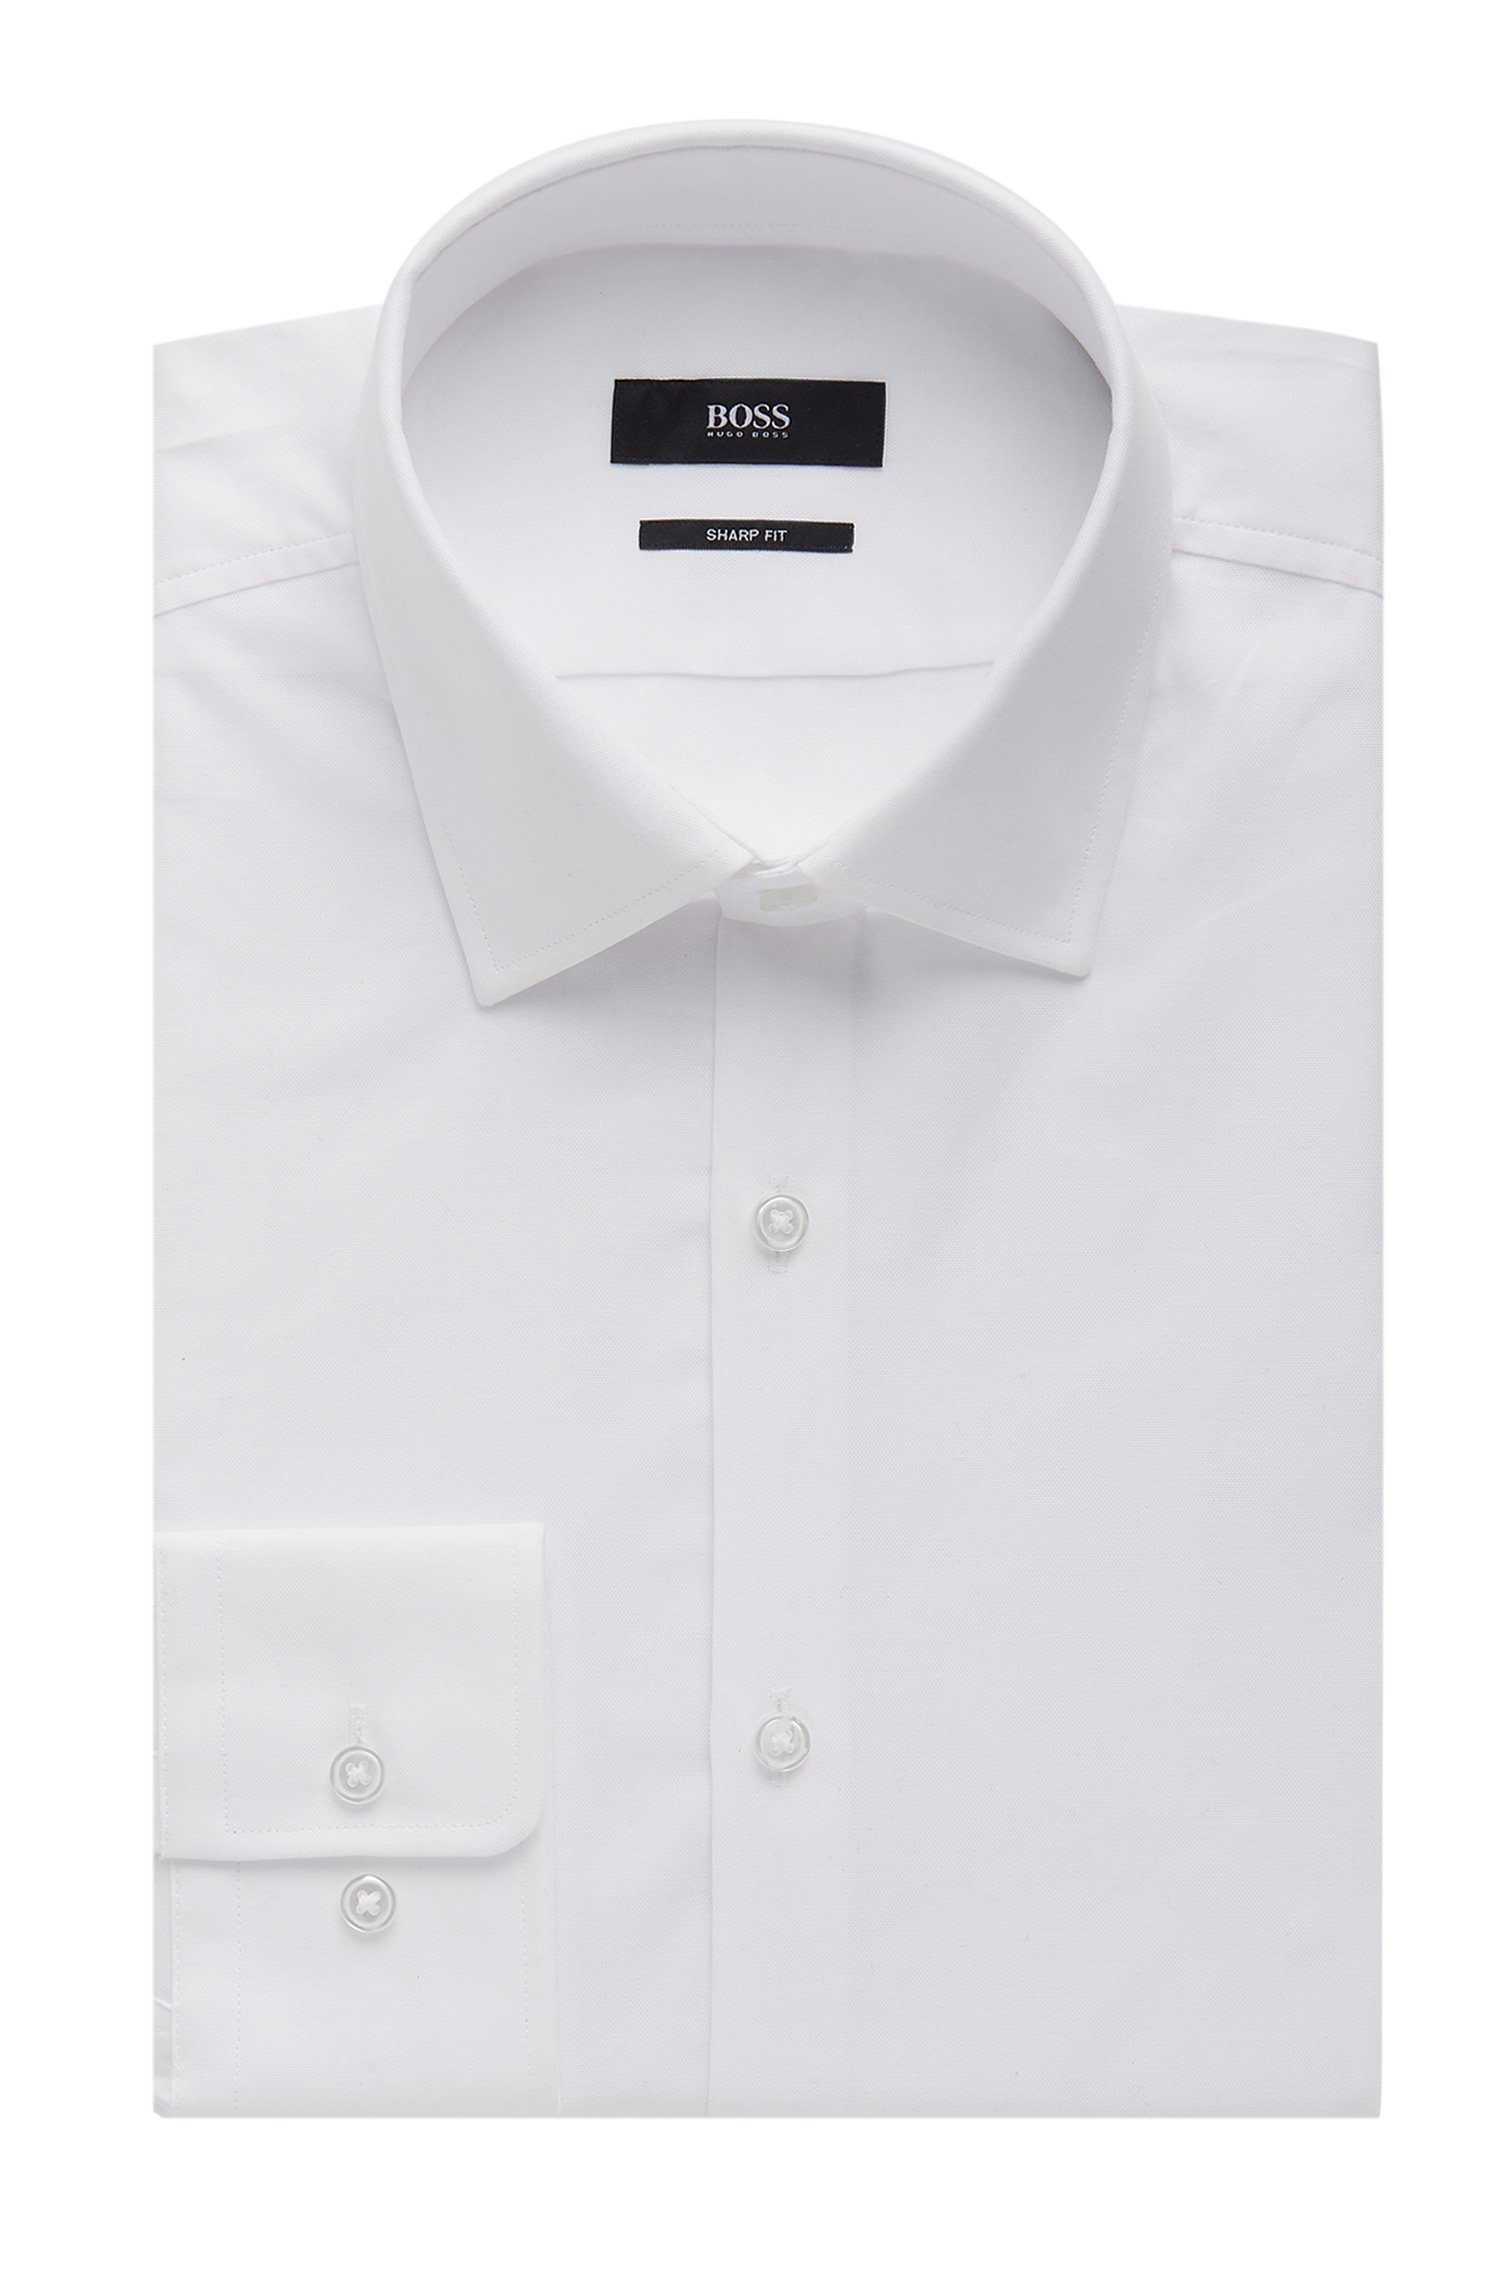 Hugo Boss Nailhead Cotton Dress Shirt, Sharp Fit Marley US (White, 17 x 34/35 )